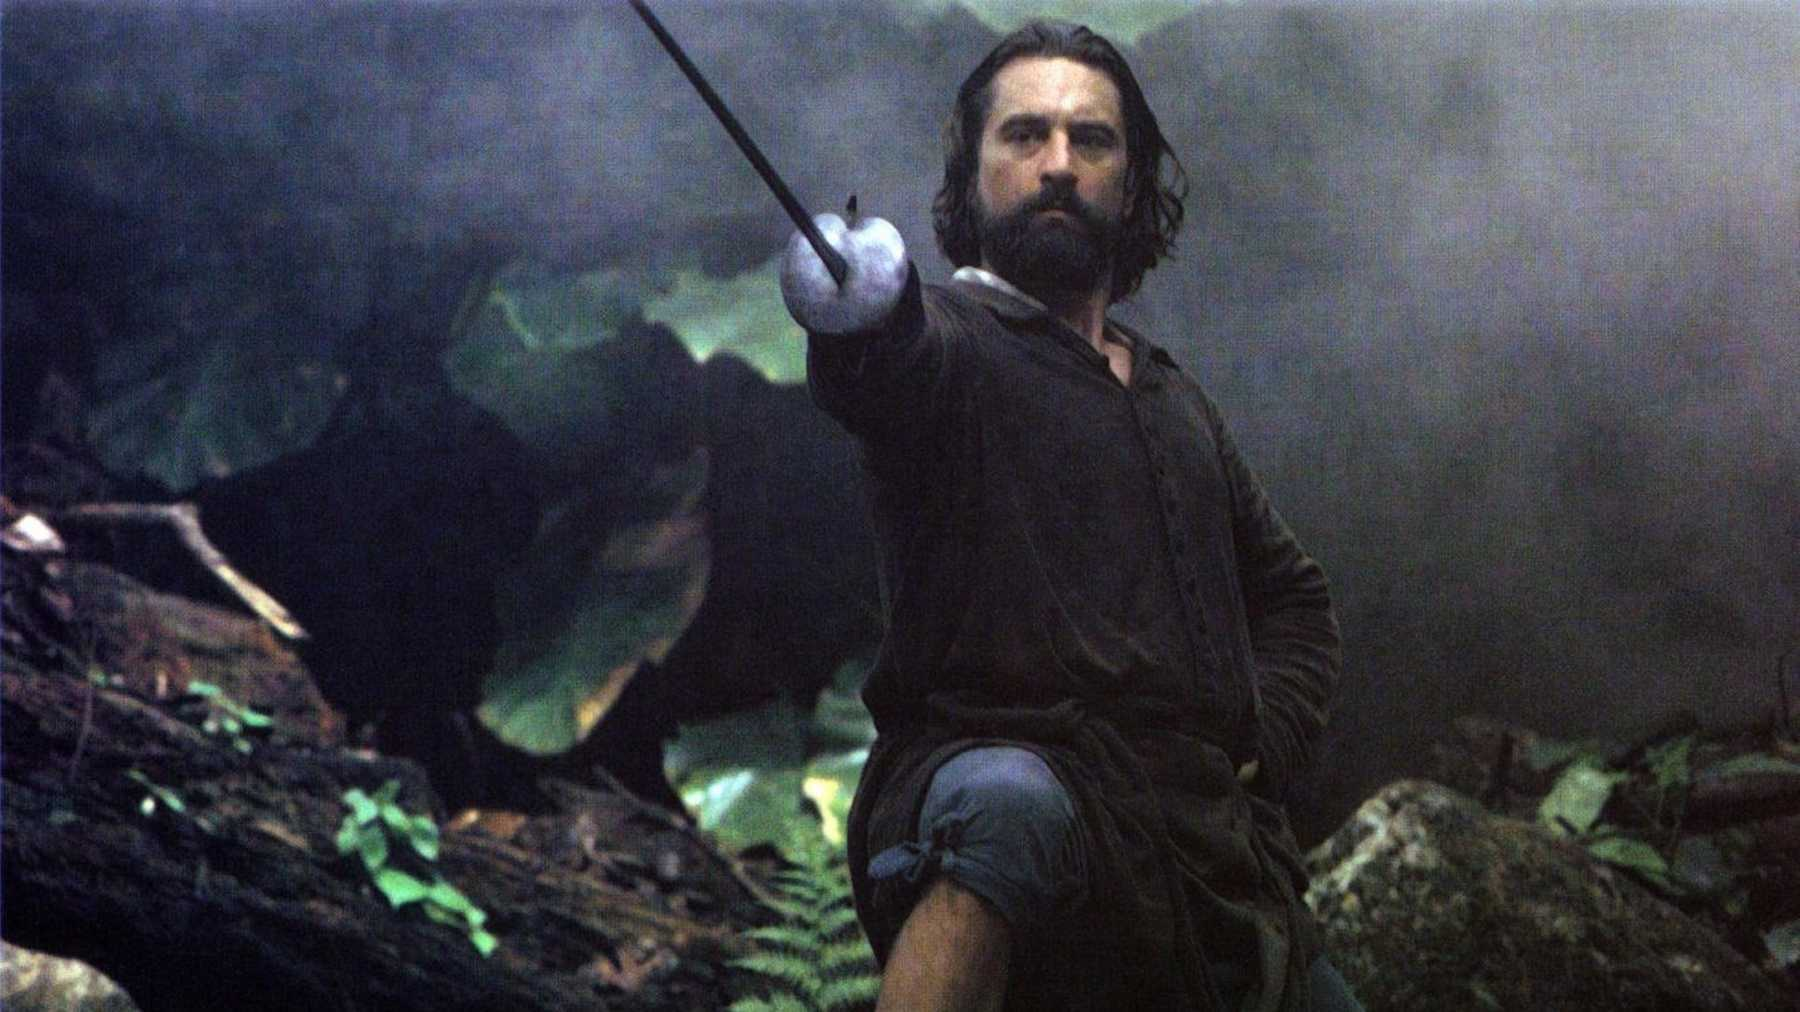 A still frame from the 1986 film